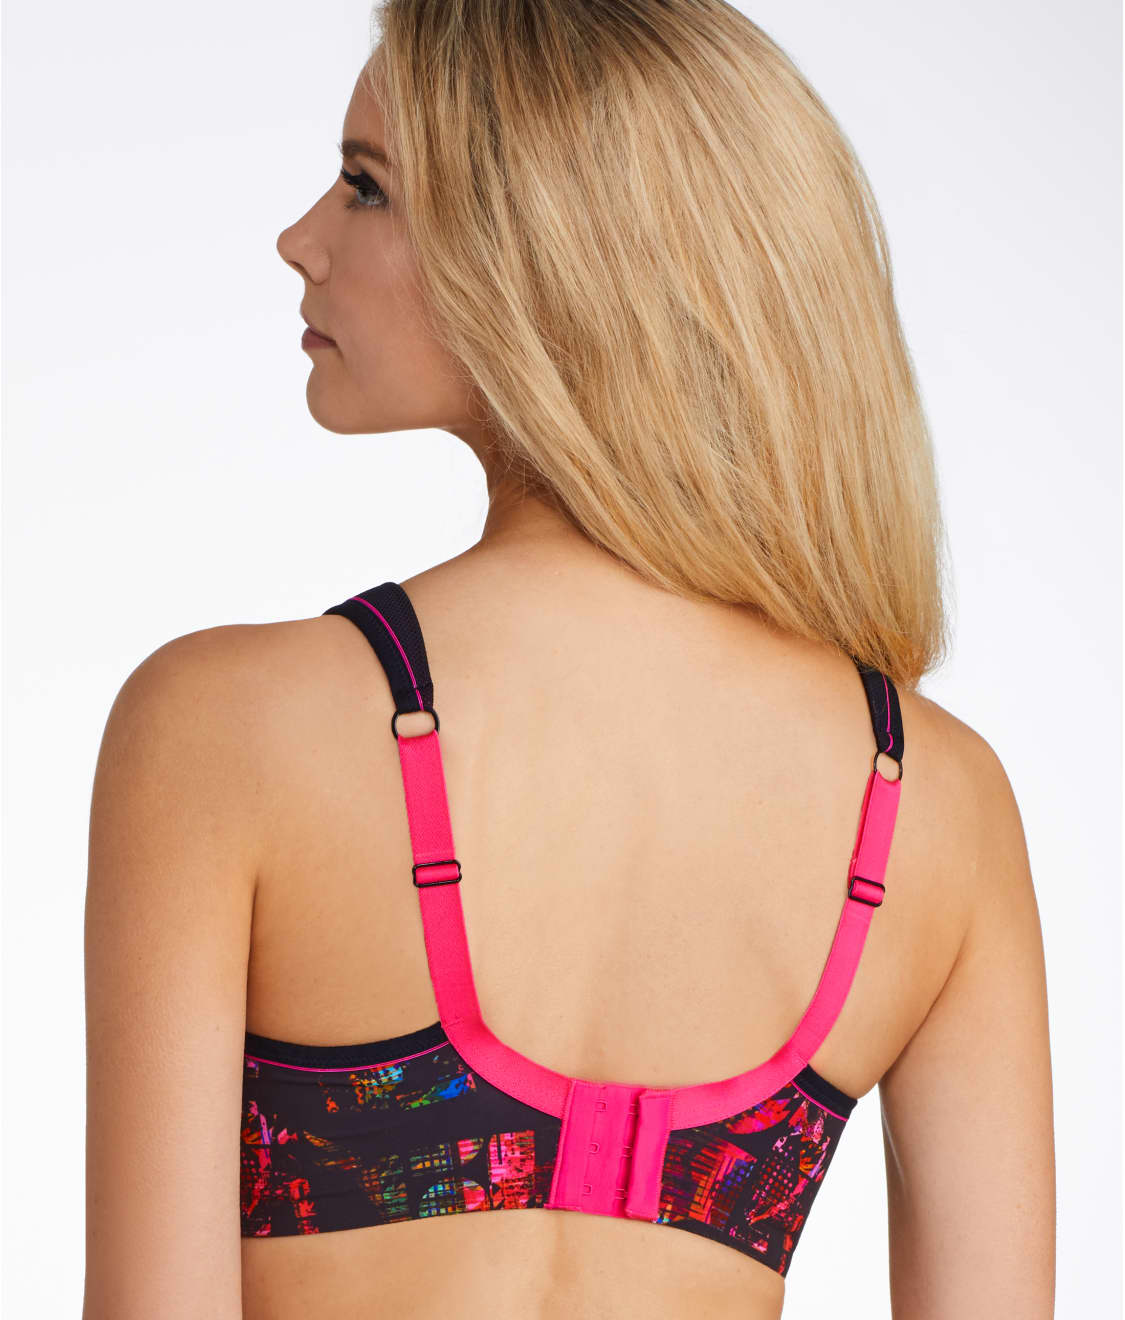 276c98204 See Ultimate High Impact Underwire Sports Bra in Neon Pixel Print